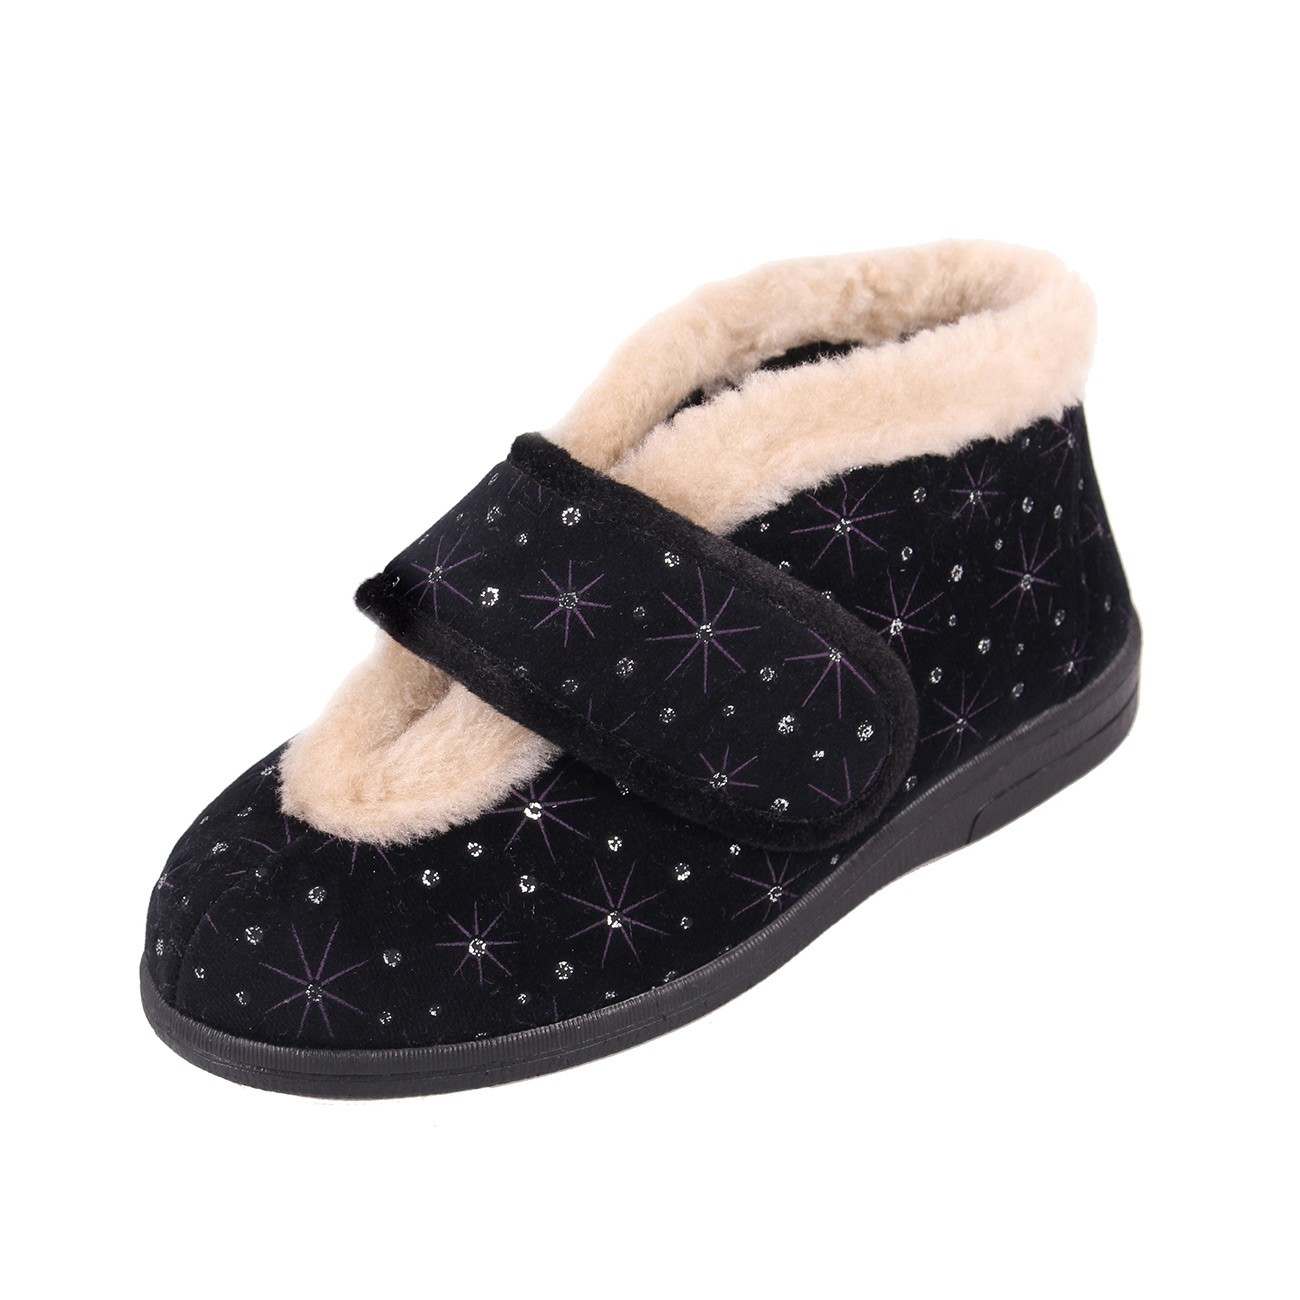 Sandpiper Val Black Starburst Ladies Slipper